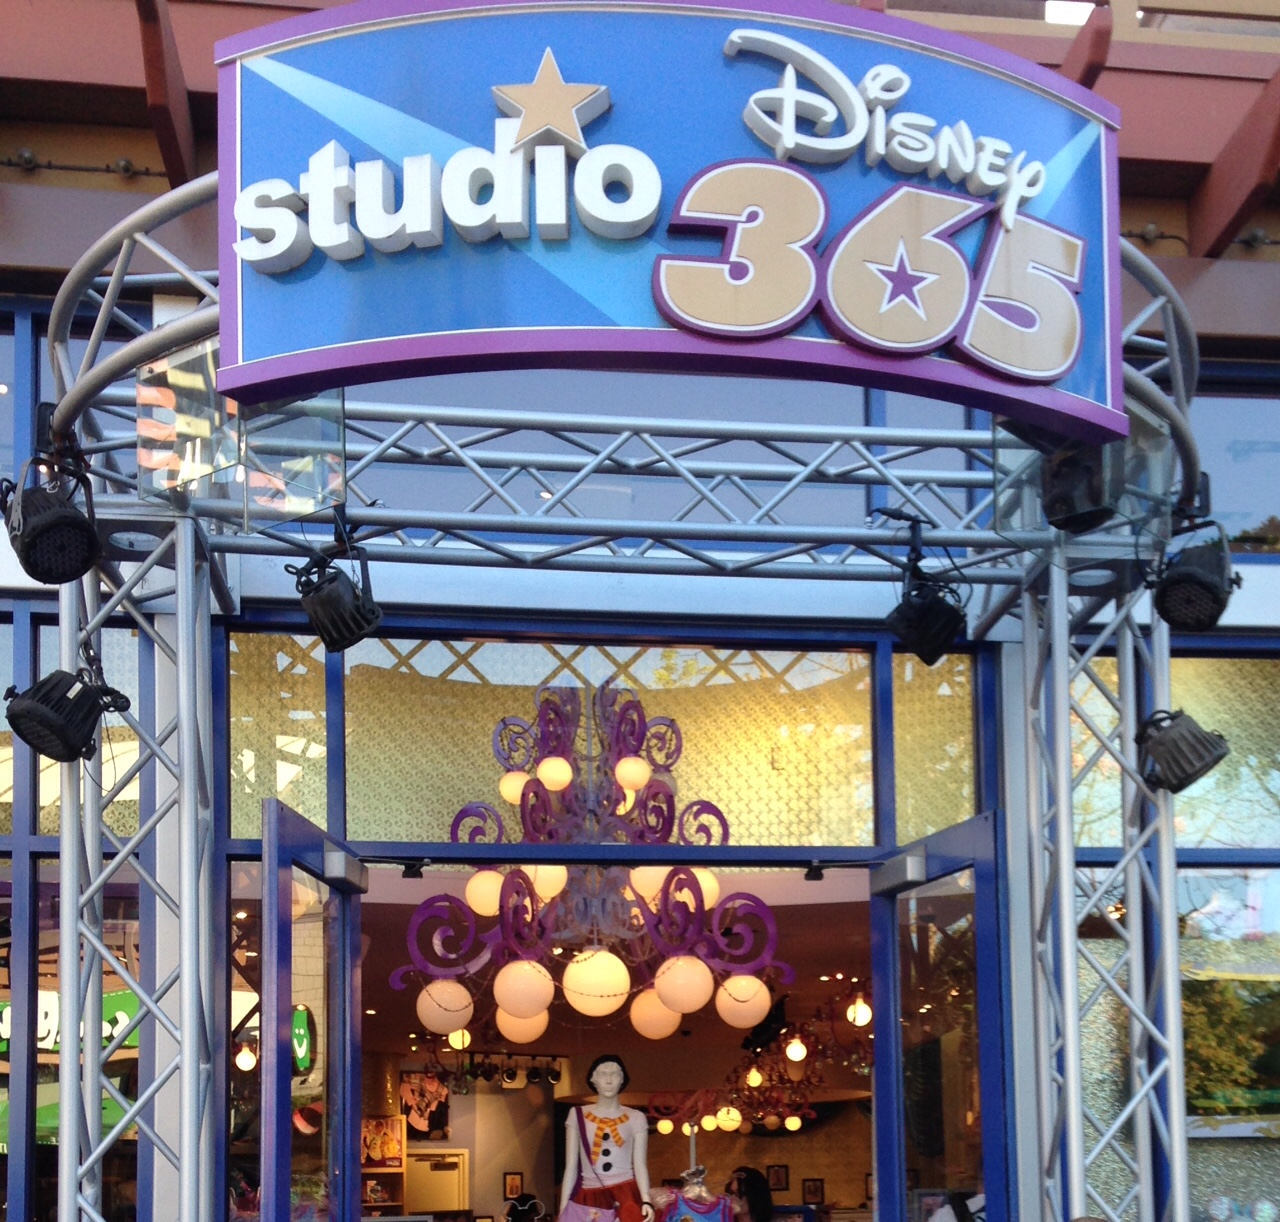 Review of Studio Disney 365 at Downtown Disney (Now Anna & Elsa's Boutique)